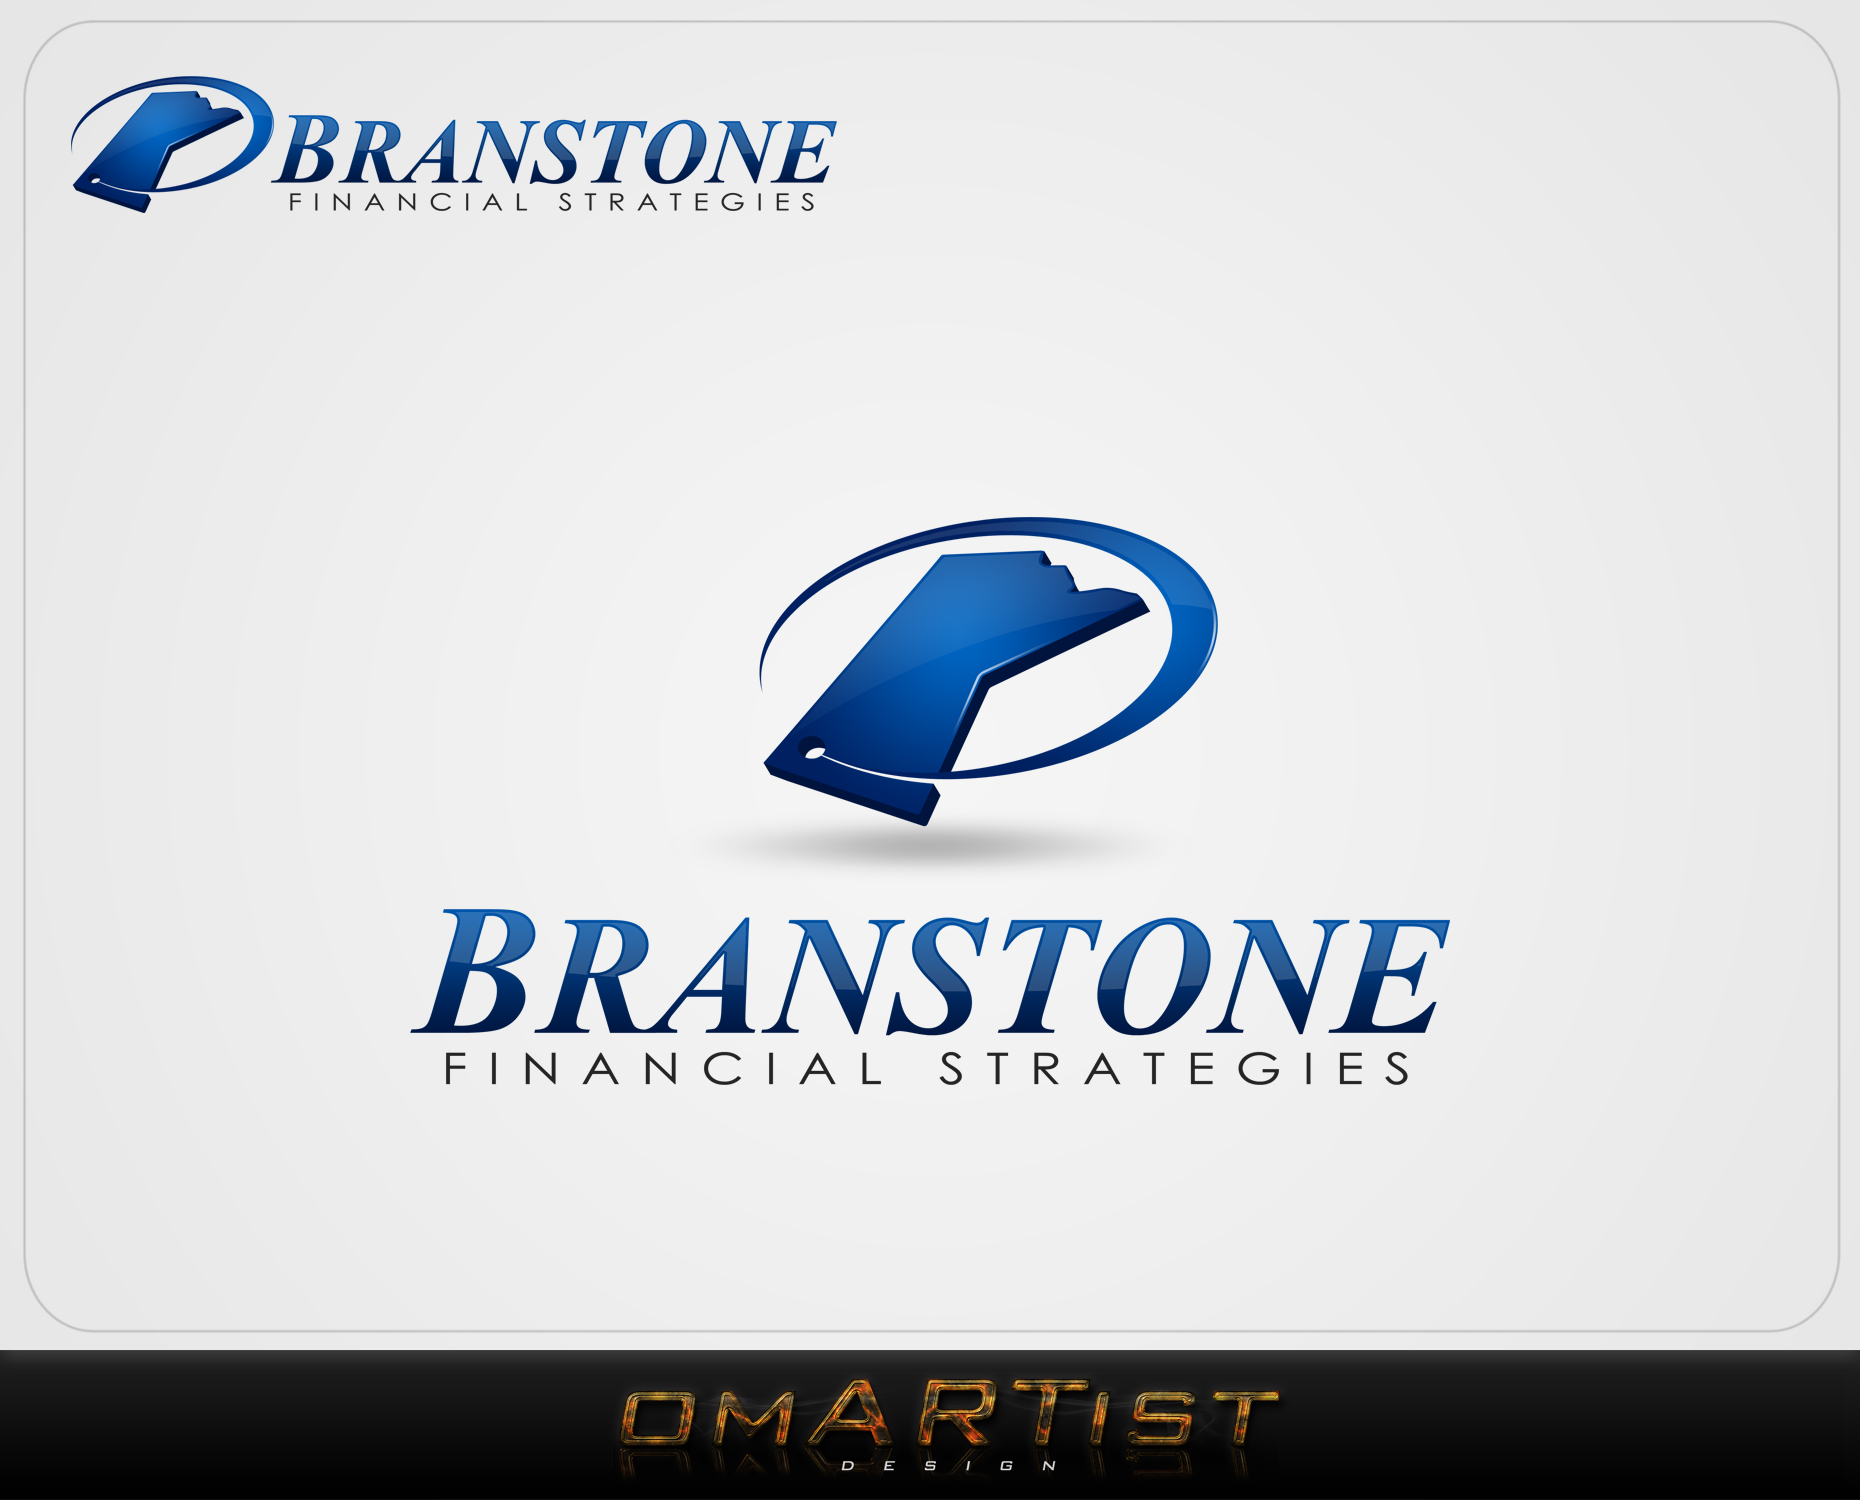 Logo Design by omARTist - Entry No. 114 in the Logo Design Contest Inspiring Logo Design for Branstone Financial Strategies.